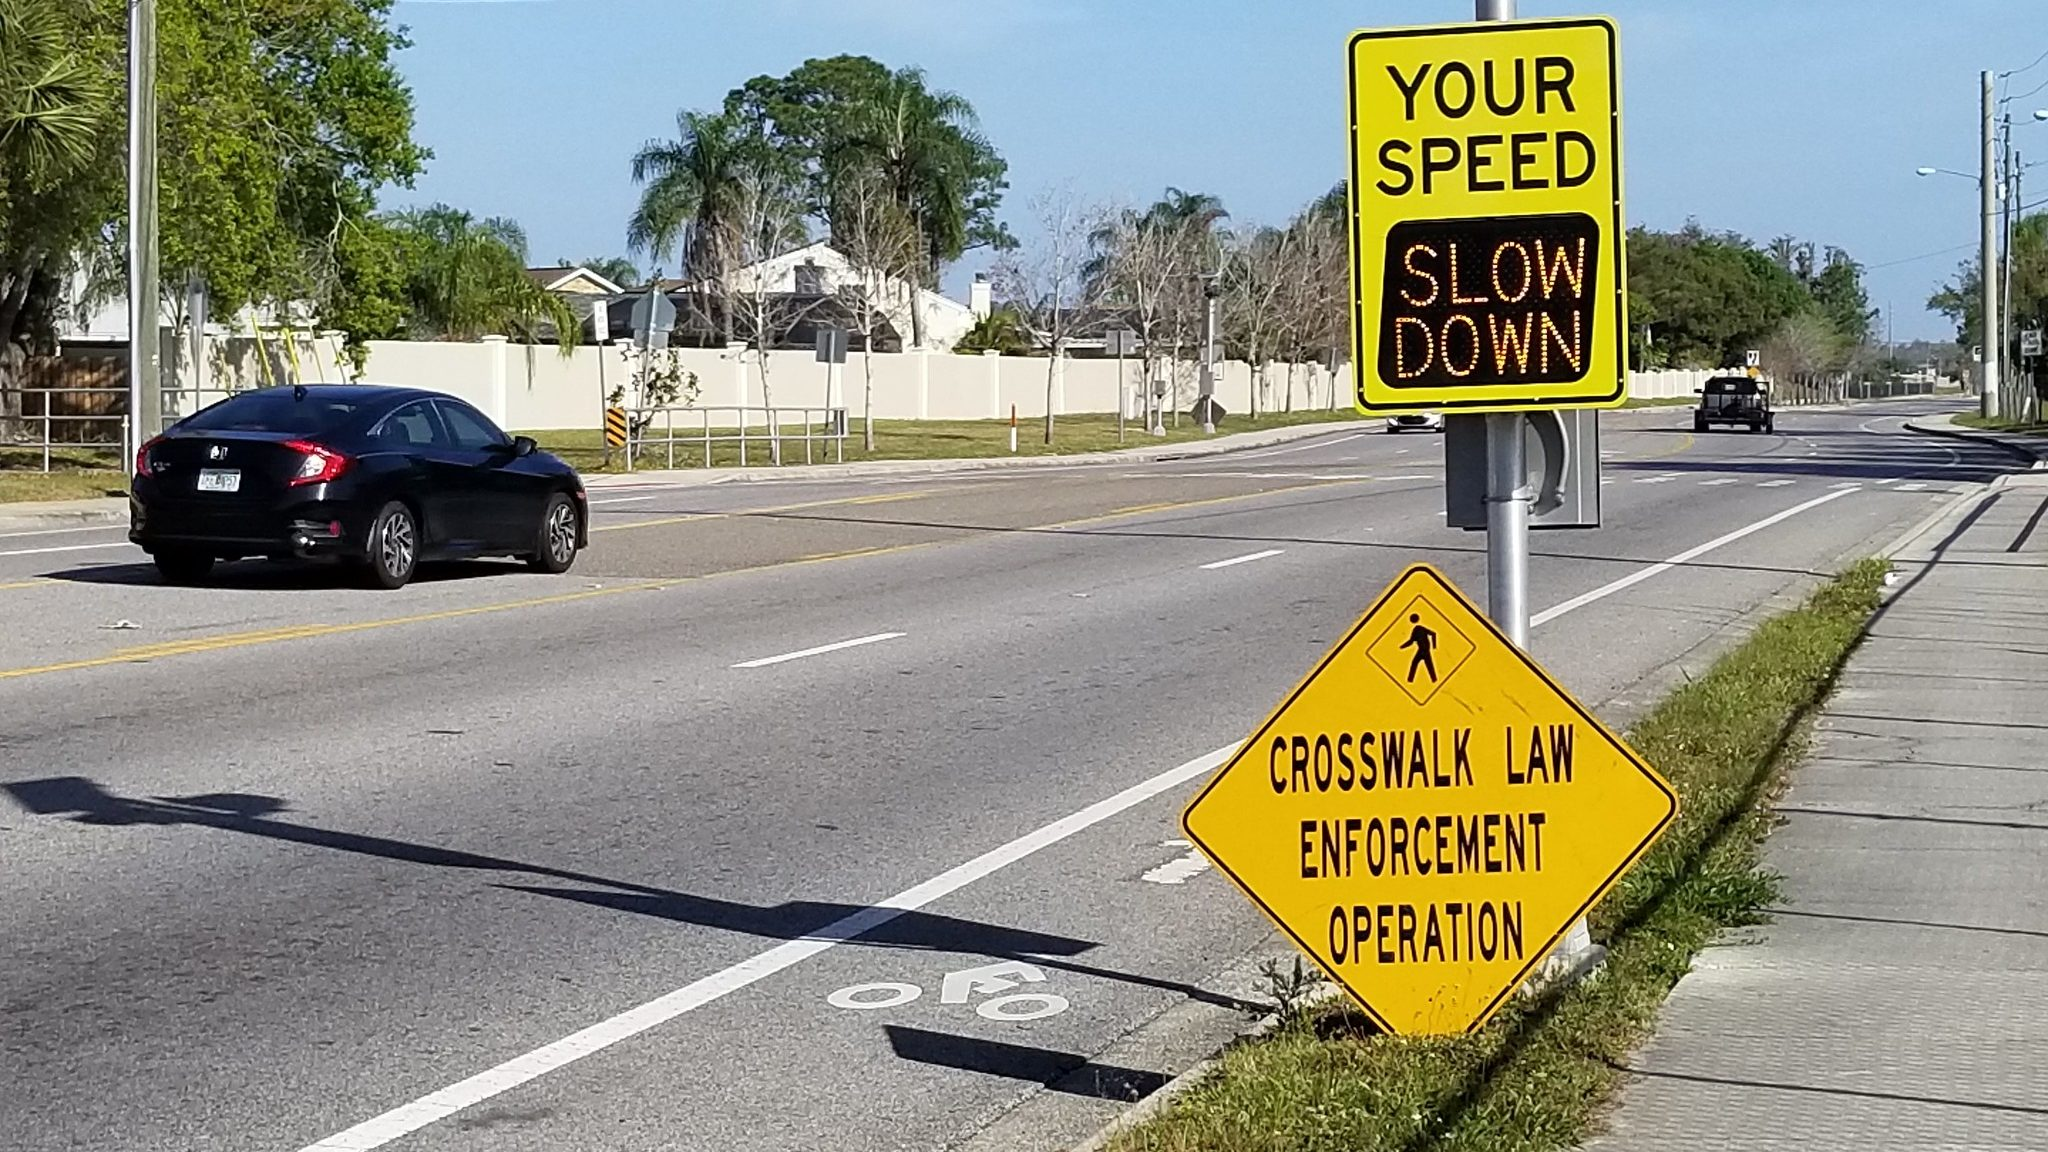 Media Advisory: Local Law Enforcement Conducts Crosswalk Crackdown As More Drivers Get Back On The Road